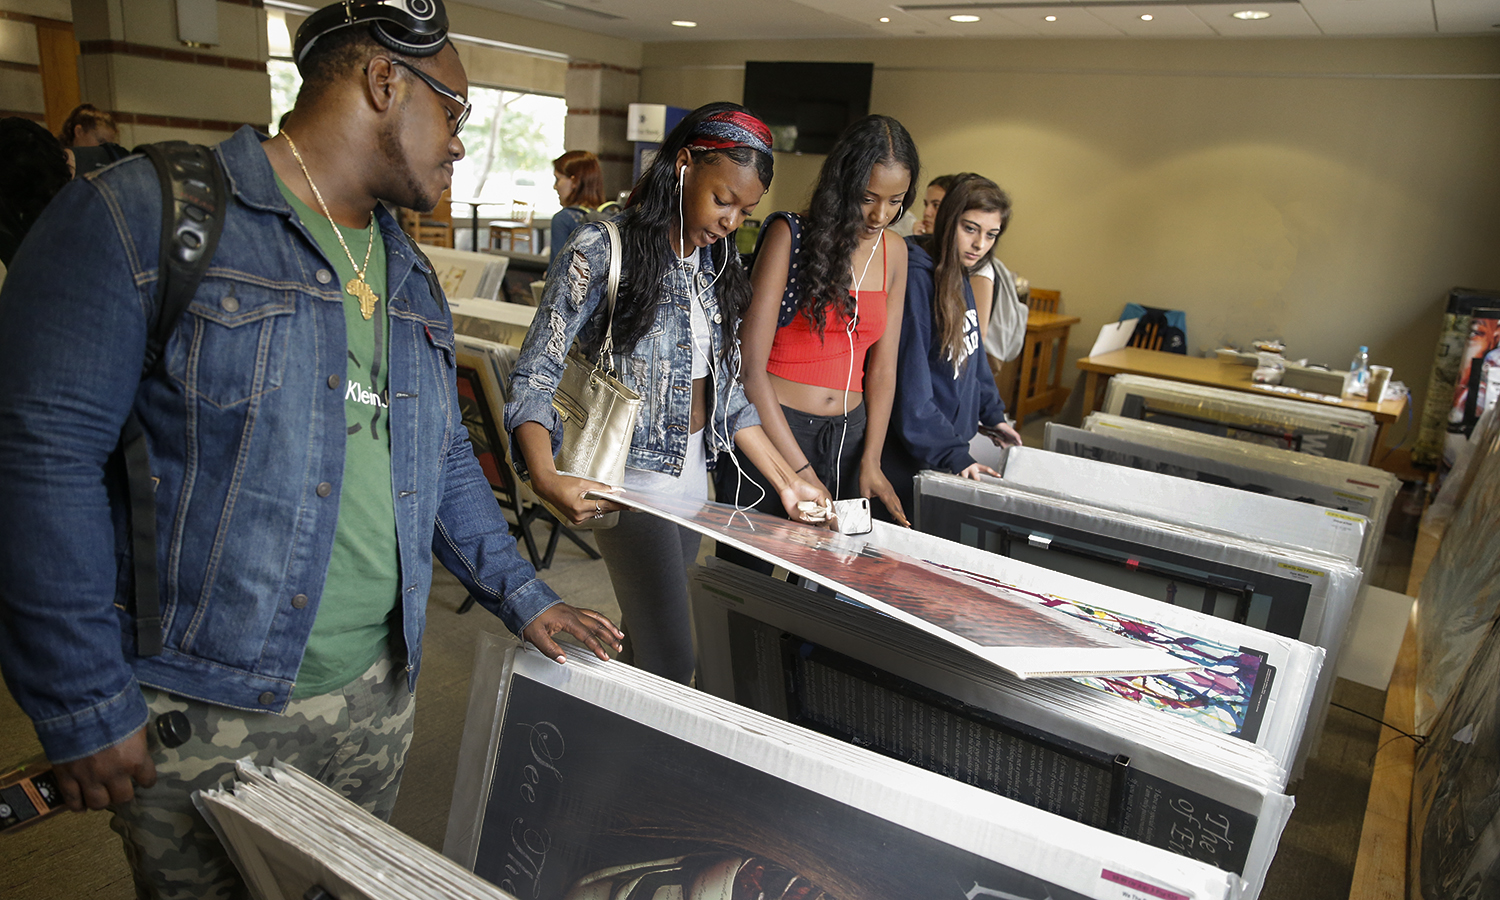 Students browse through posters in the Scandling Campus Center during the annual poster sale on campus.